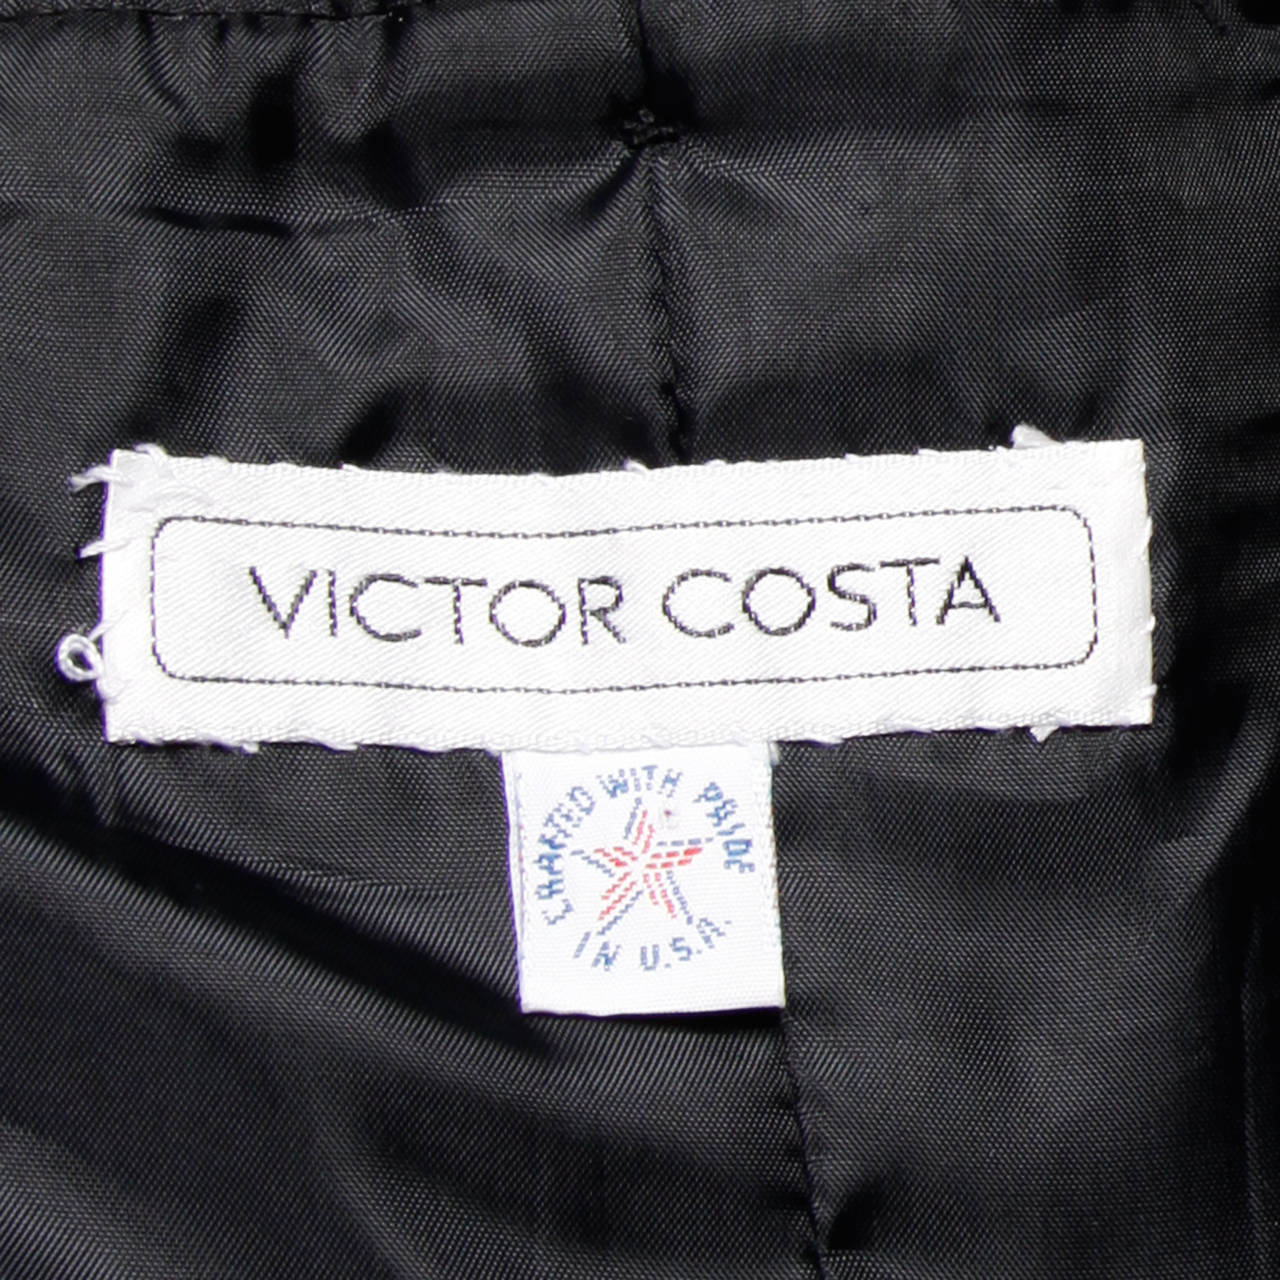 Victor Costa Vintage Black Origami Pleated Avant Garde Strapless Dress For Sale 5